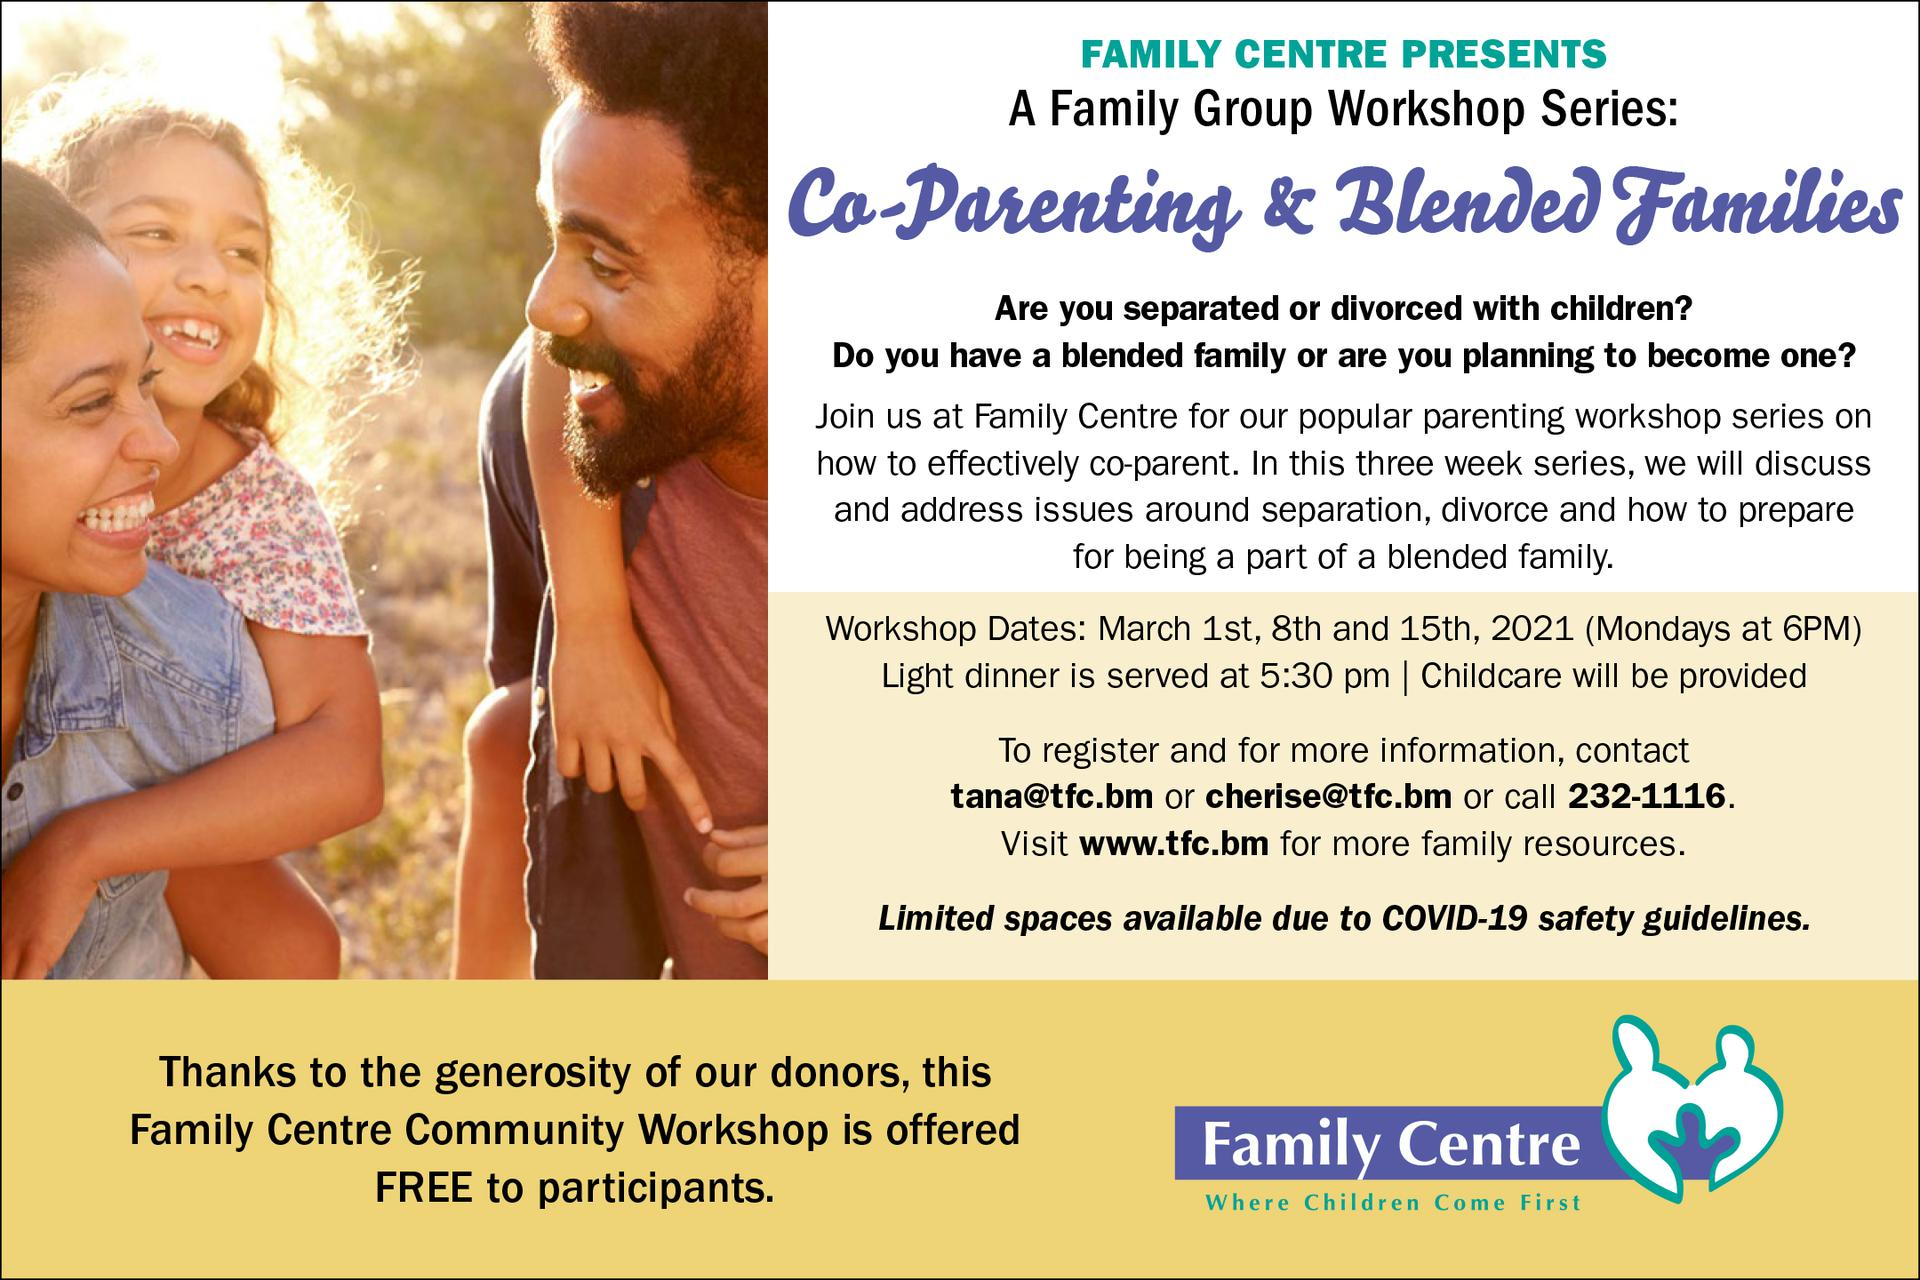 Family Centre Presents a Family Group Workshop Series: Co-Parenting & Blended Families